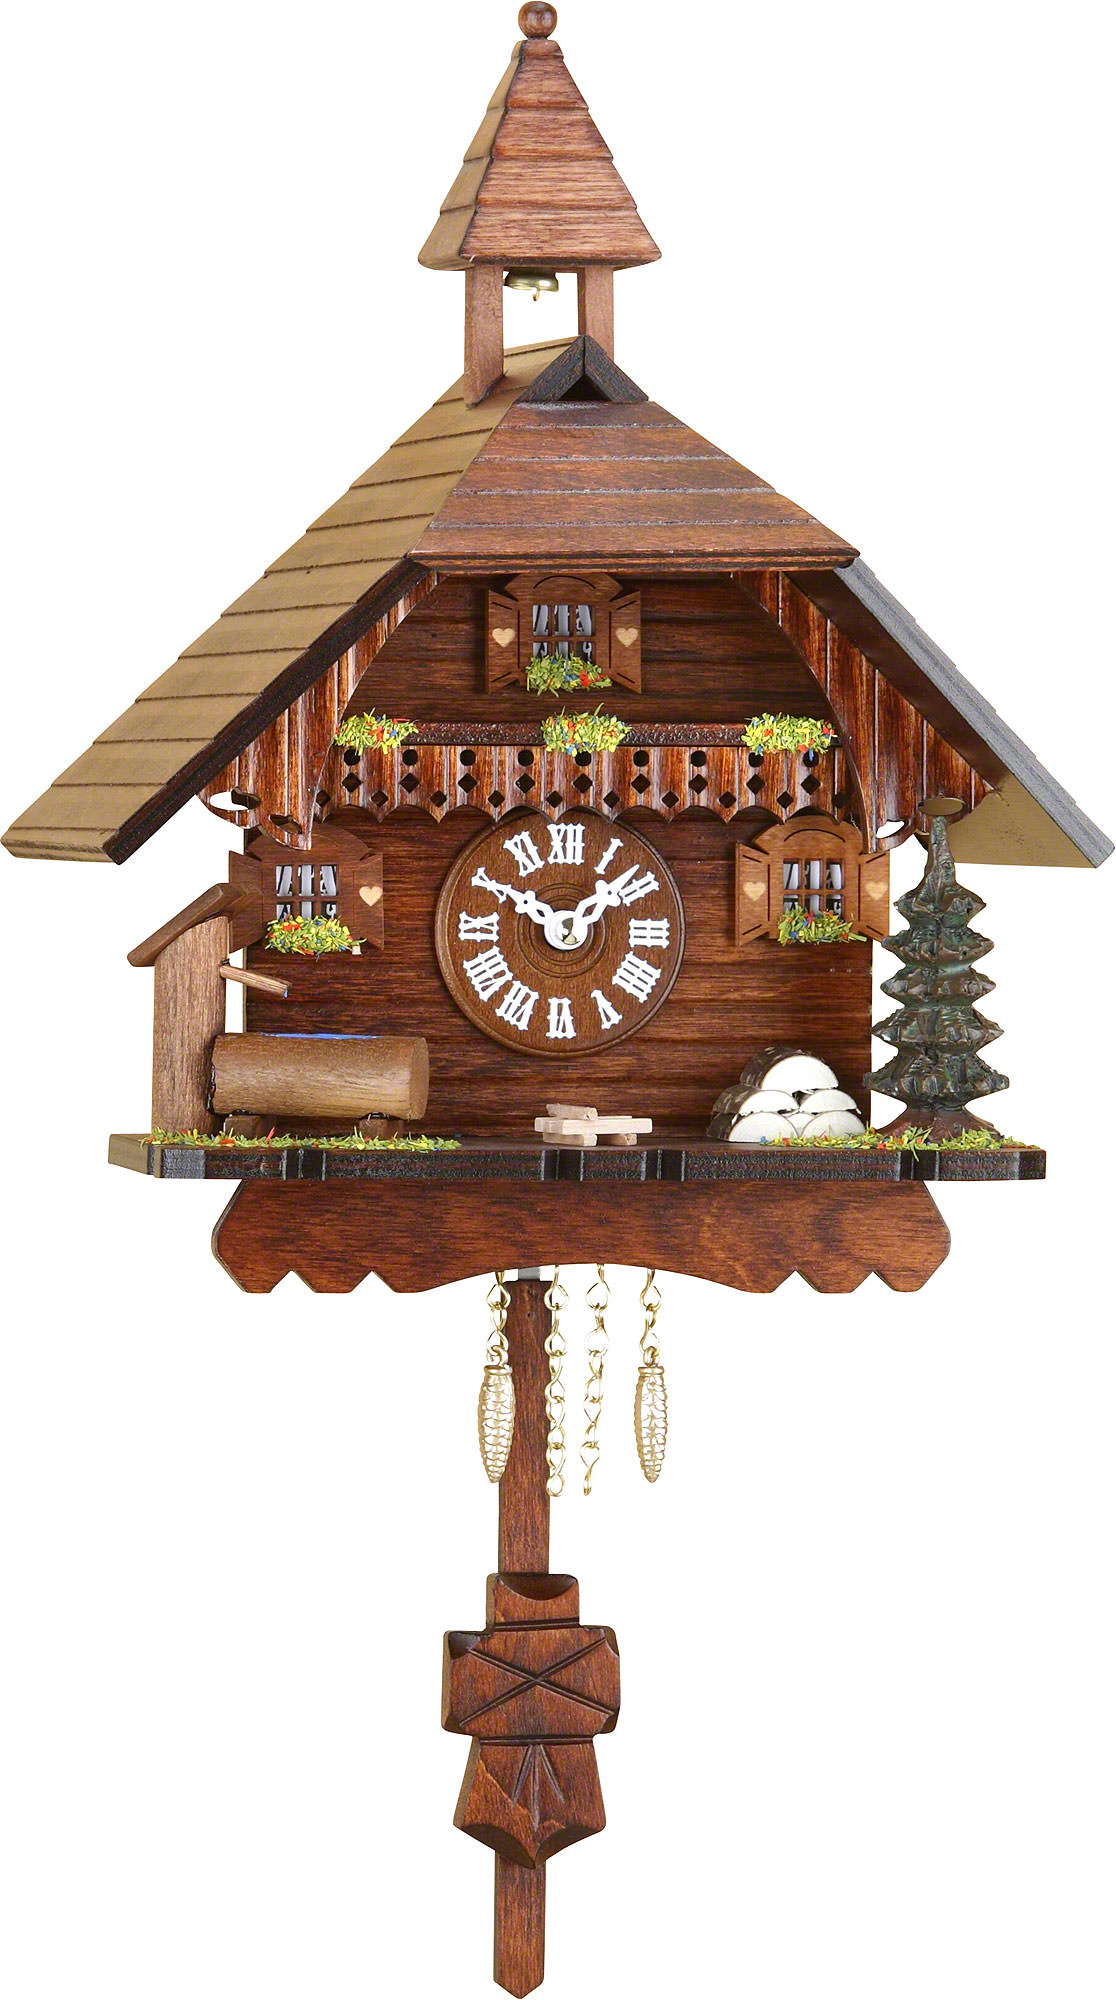 Cuckoo clock quartz movement black forest pendulum clock style 24cm by trenkle uhren 2034pq - Cuckoo clock pendulum ...